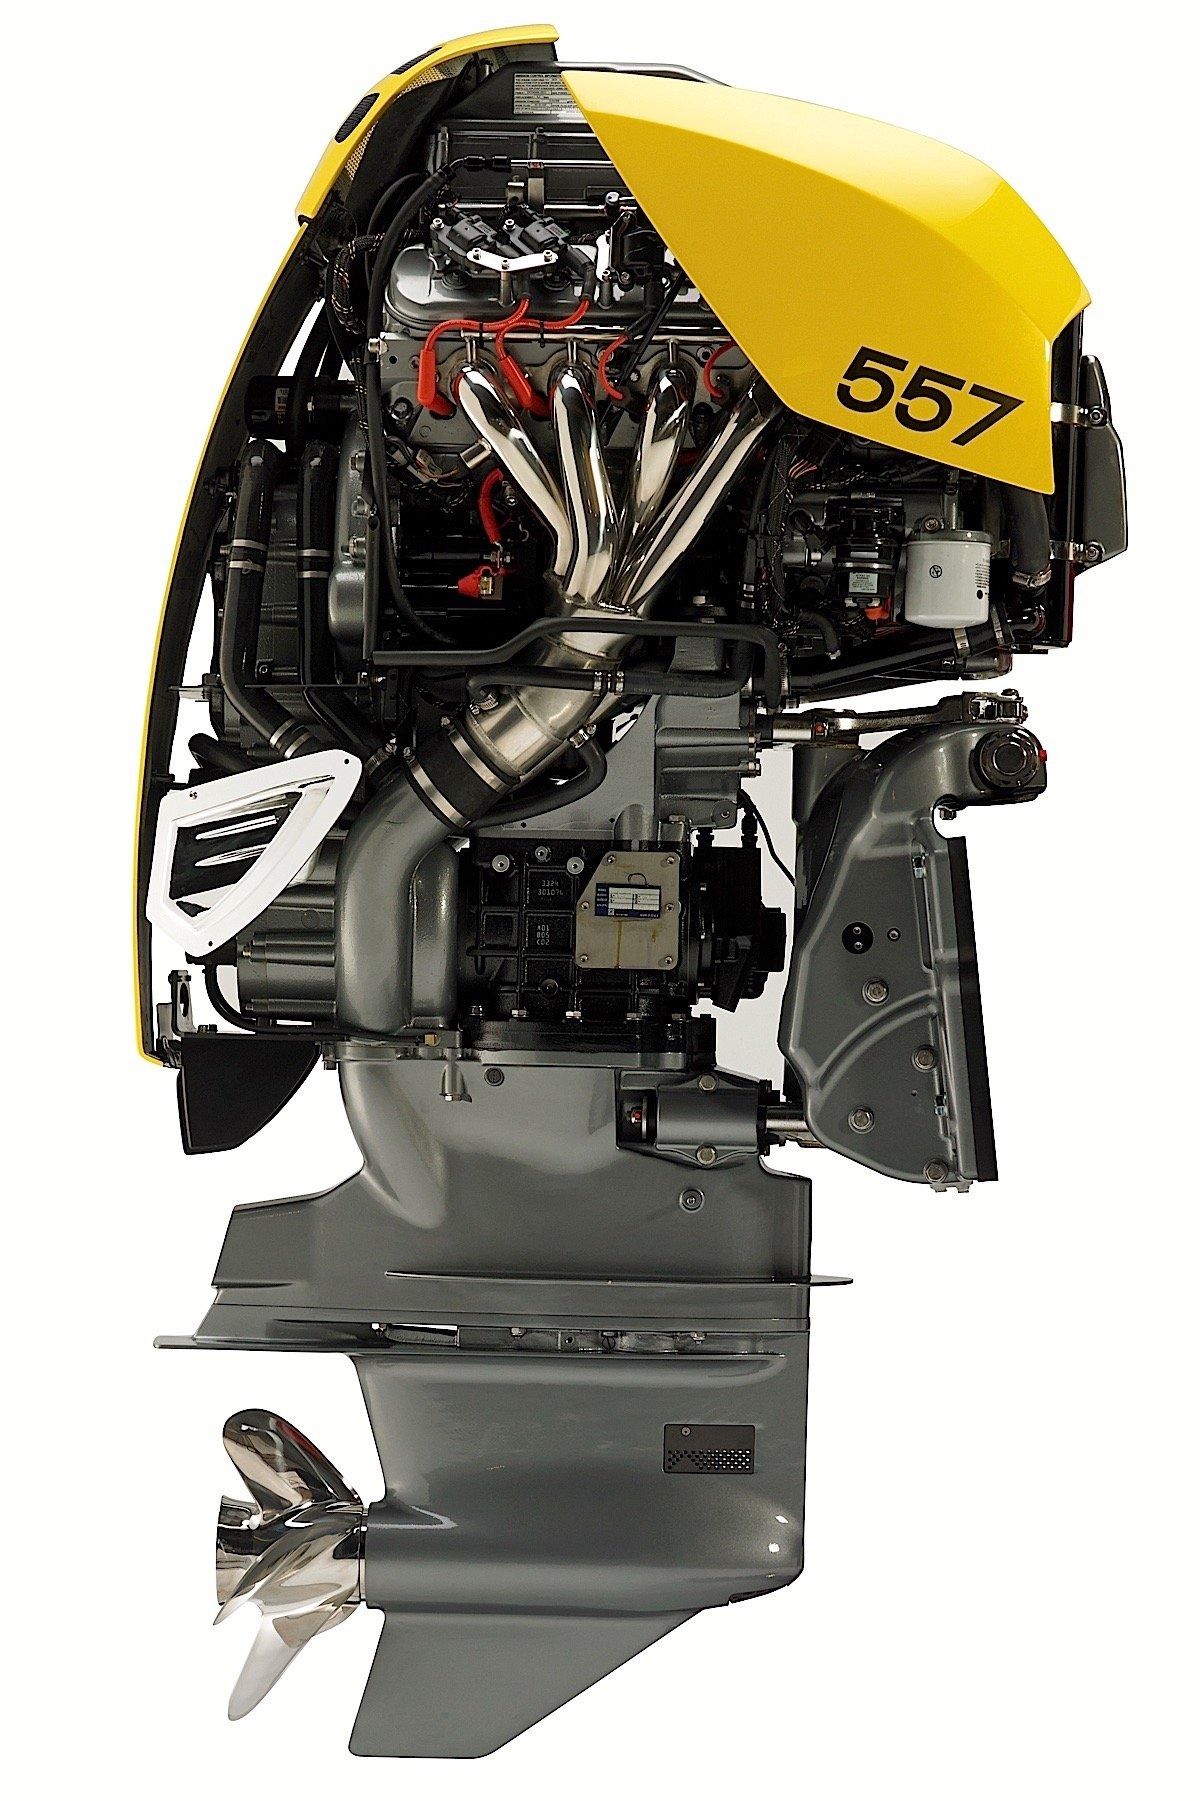 Cutaway views of the 557 outboard, which is similar to the new 627 model.